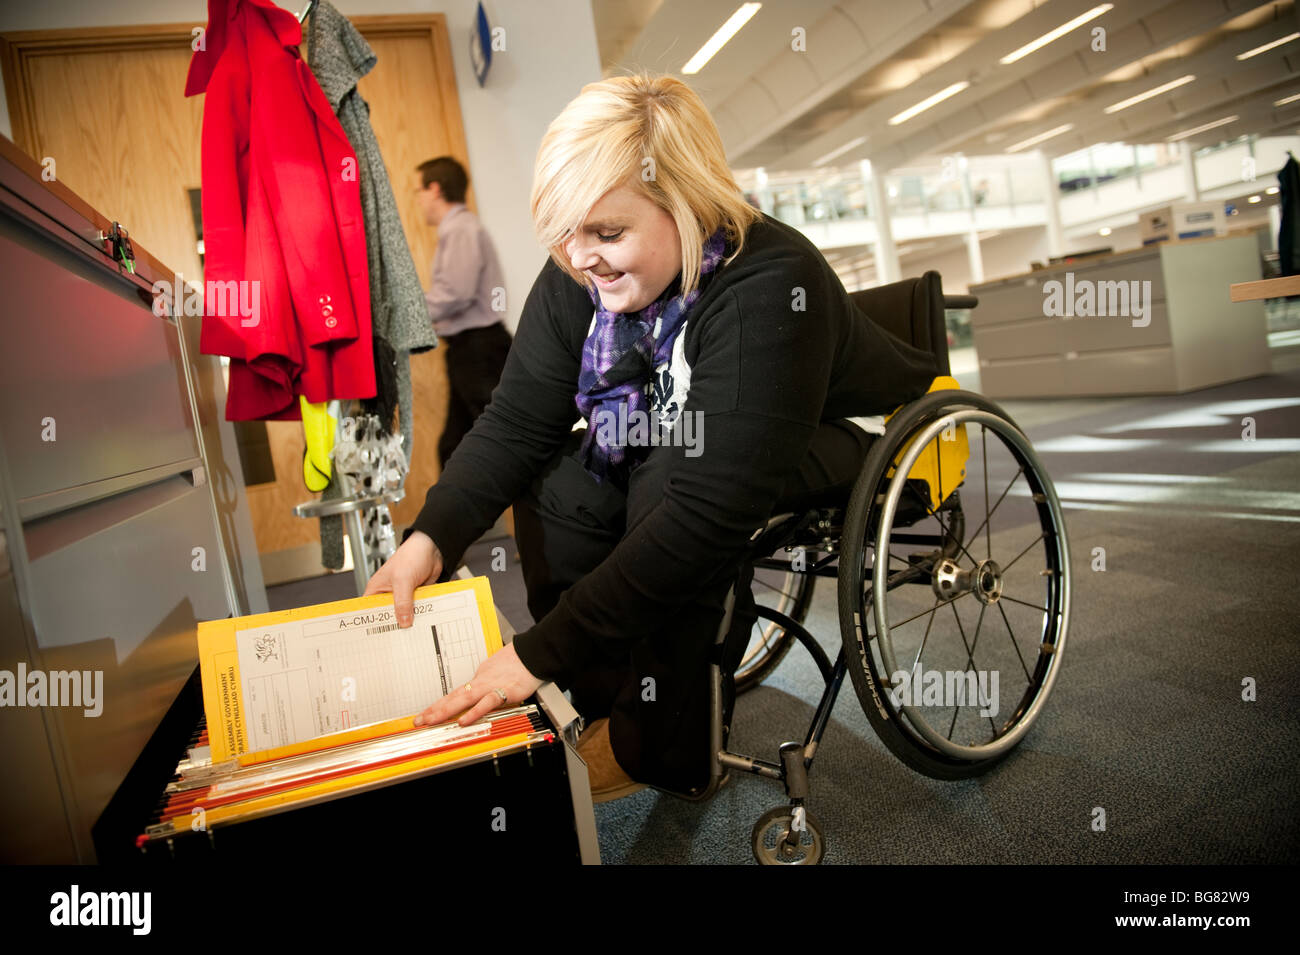 Young disabled woman in a wheelchair working filing documents in a modern office, Uk - Stock Image